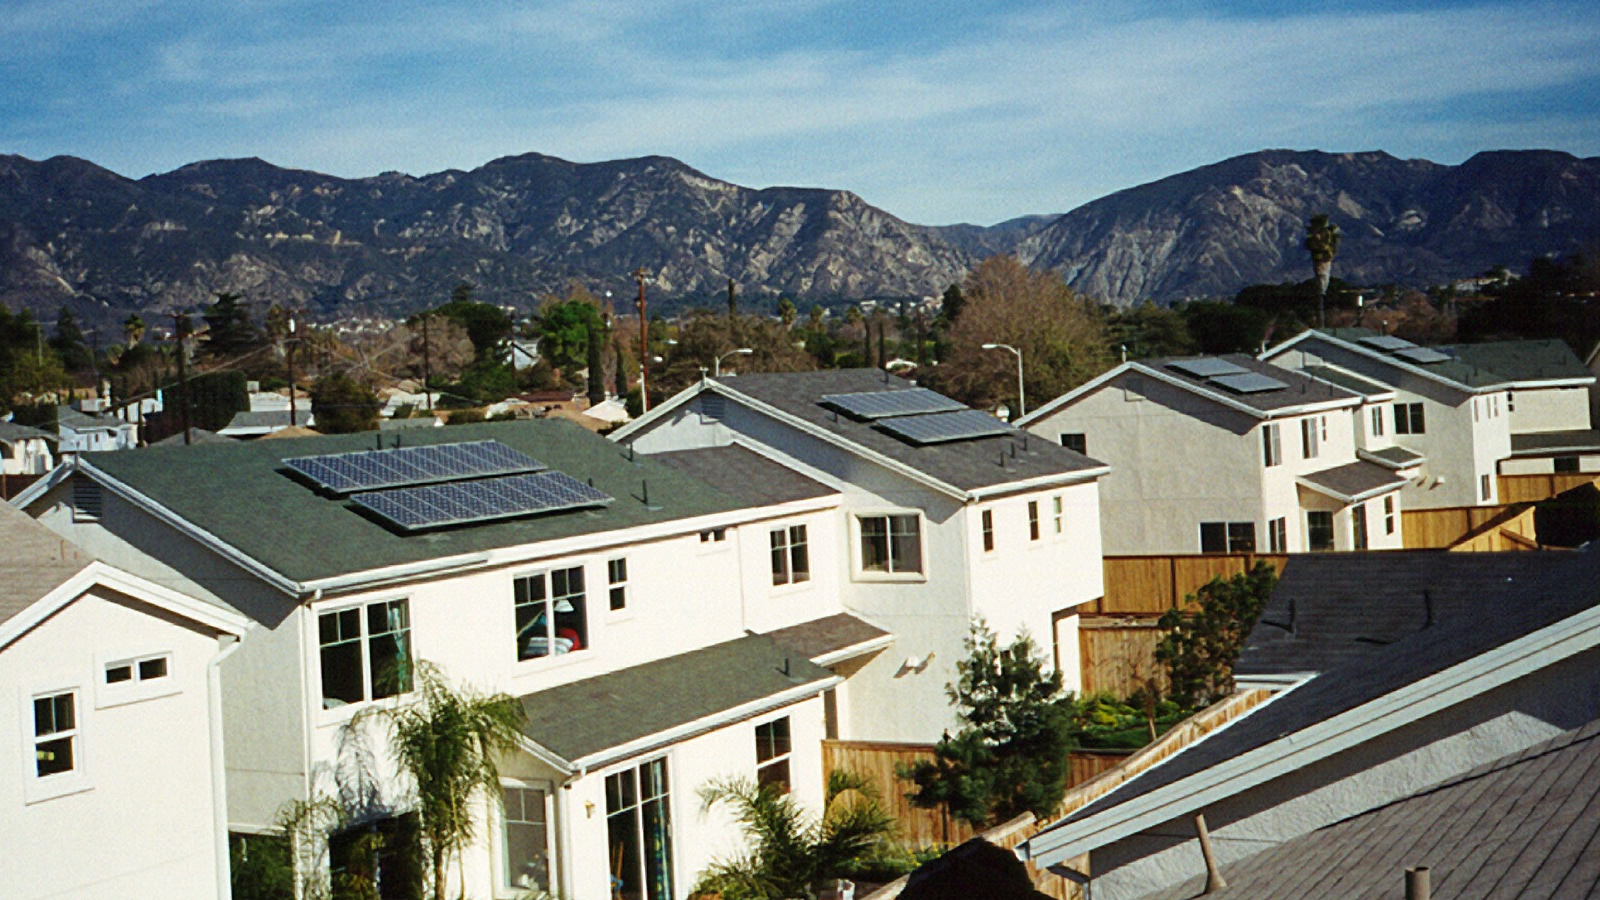 """<h4>Shining Cities</h4> <h5>America's major cities have played a key role in the clean energy revolution and stand to reap tremendous benefits from solar energy.<br><br><a href=""""https://environmentamericacenter.org/reports/ame/shining-cities-2017"""" target=""""_blank"""">Learn more...</a></h5> <em>Village Green, California / National Renewable Energy Laboratory Photo</em>"""